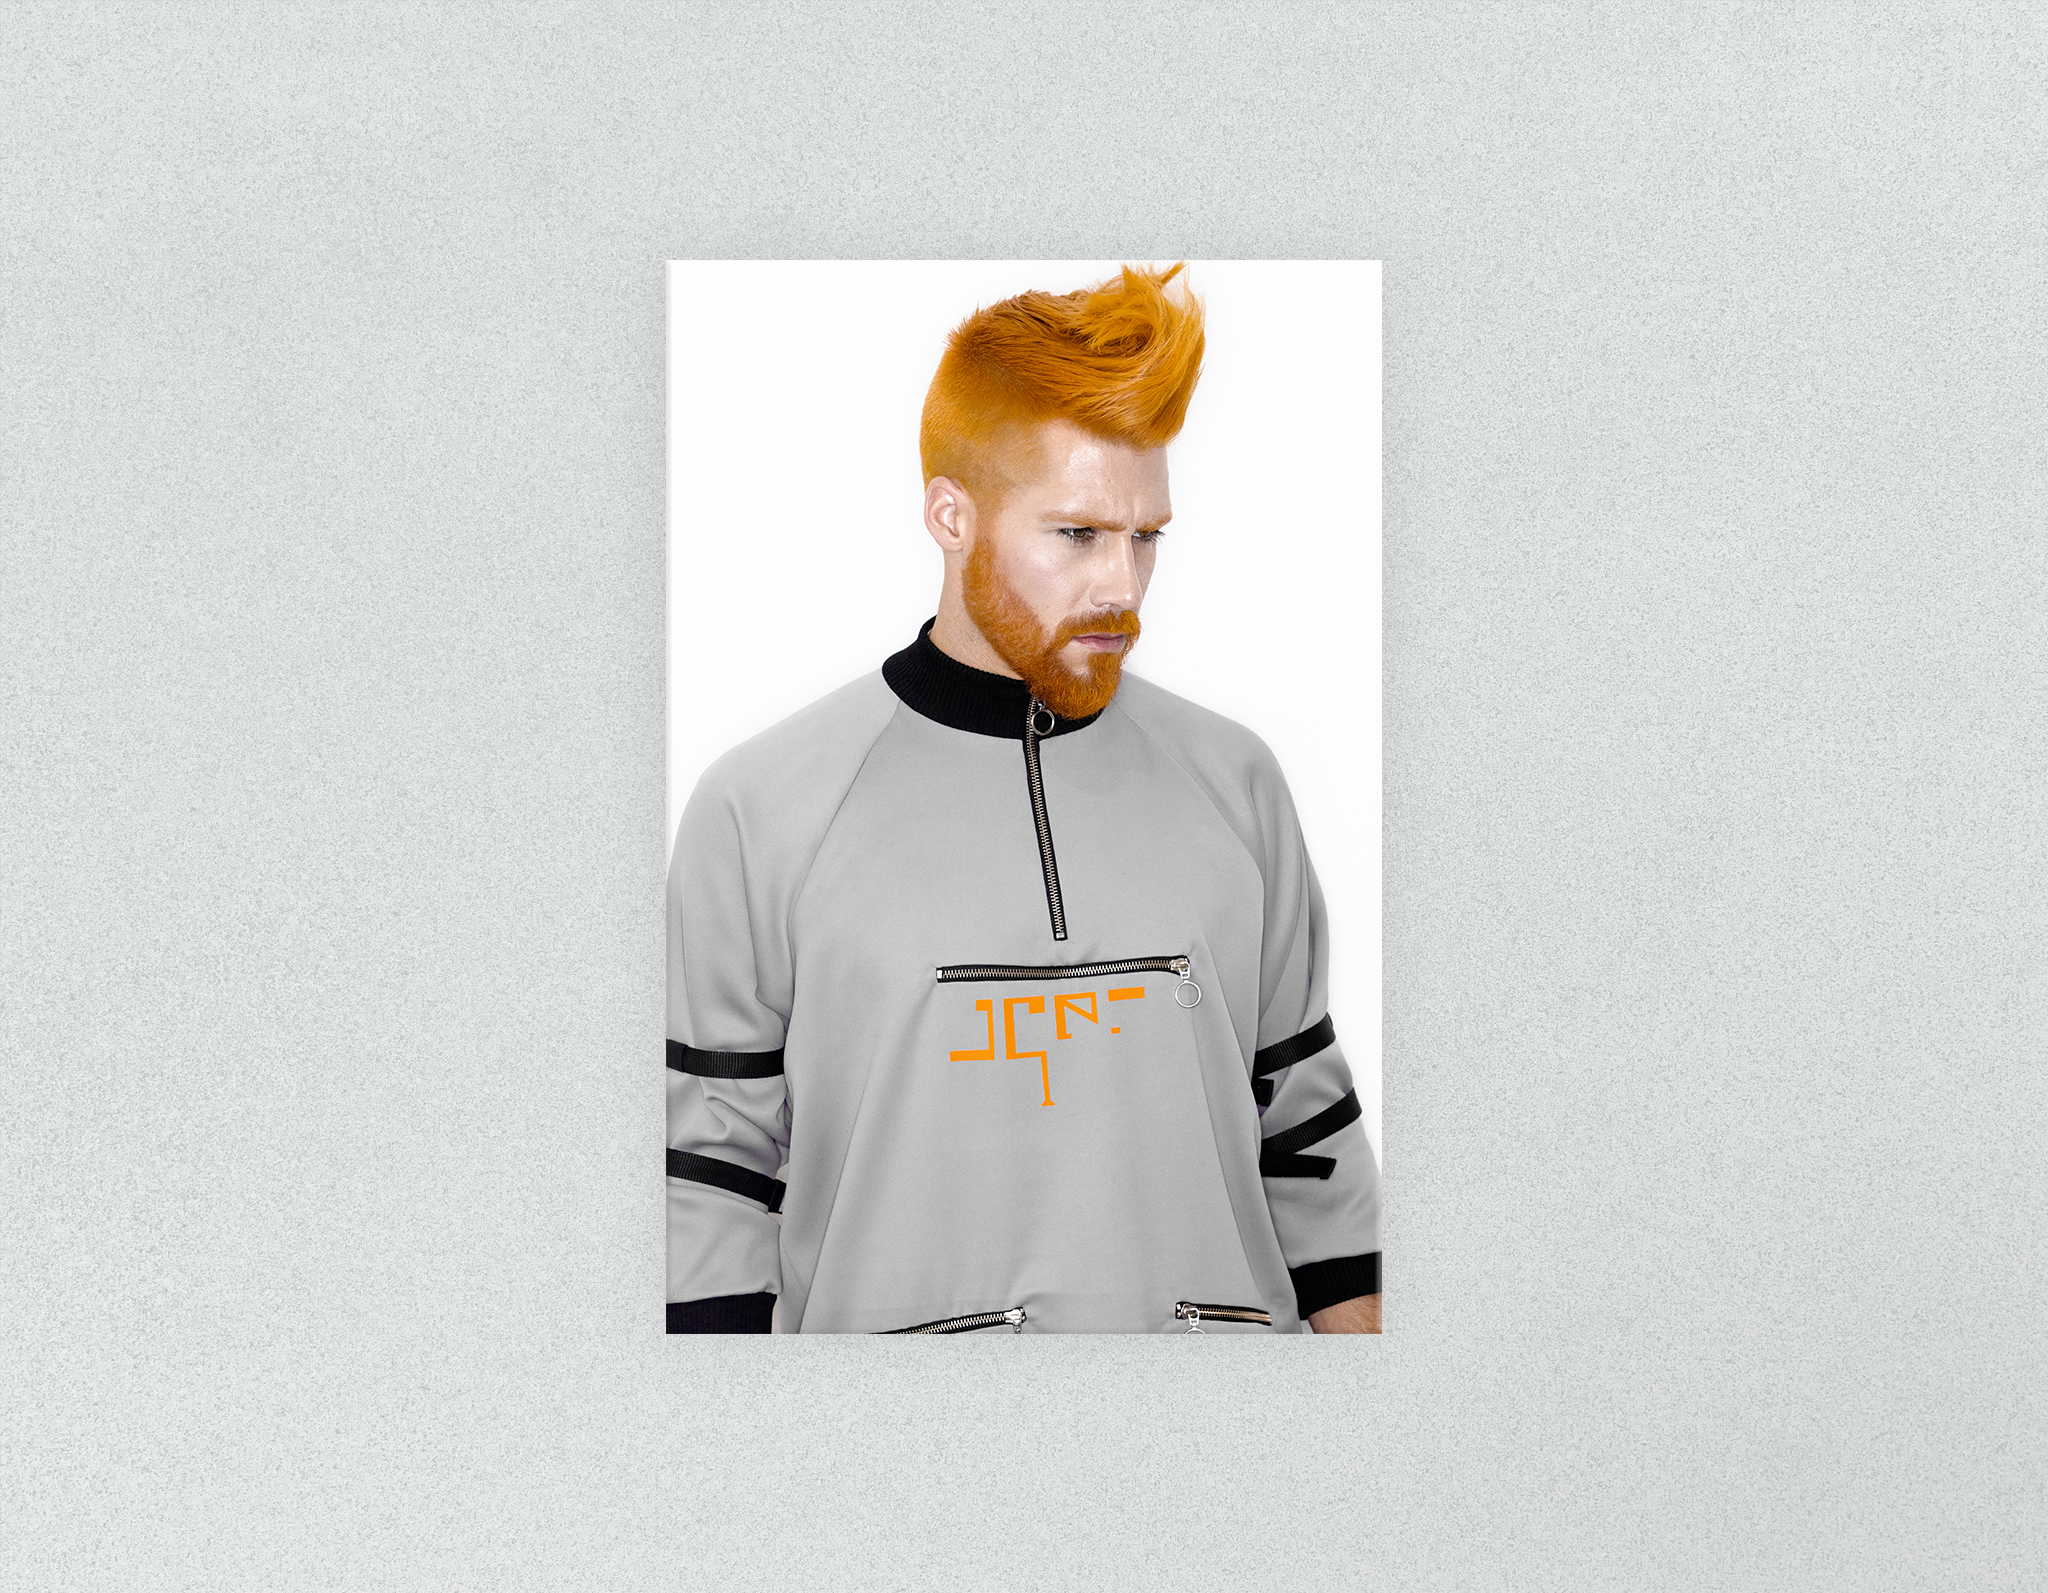 Plastic Salon Posters & Salon Posters: Man with Side High Fade Quiff and Fringe Haircut with Orange Hair color